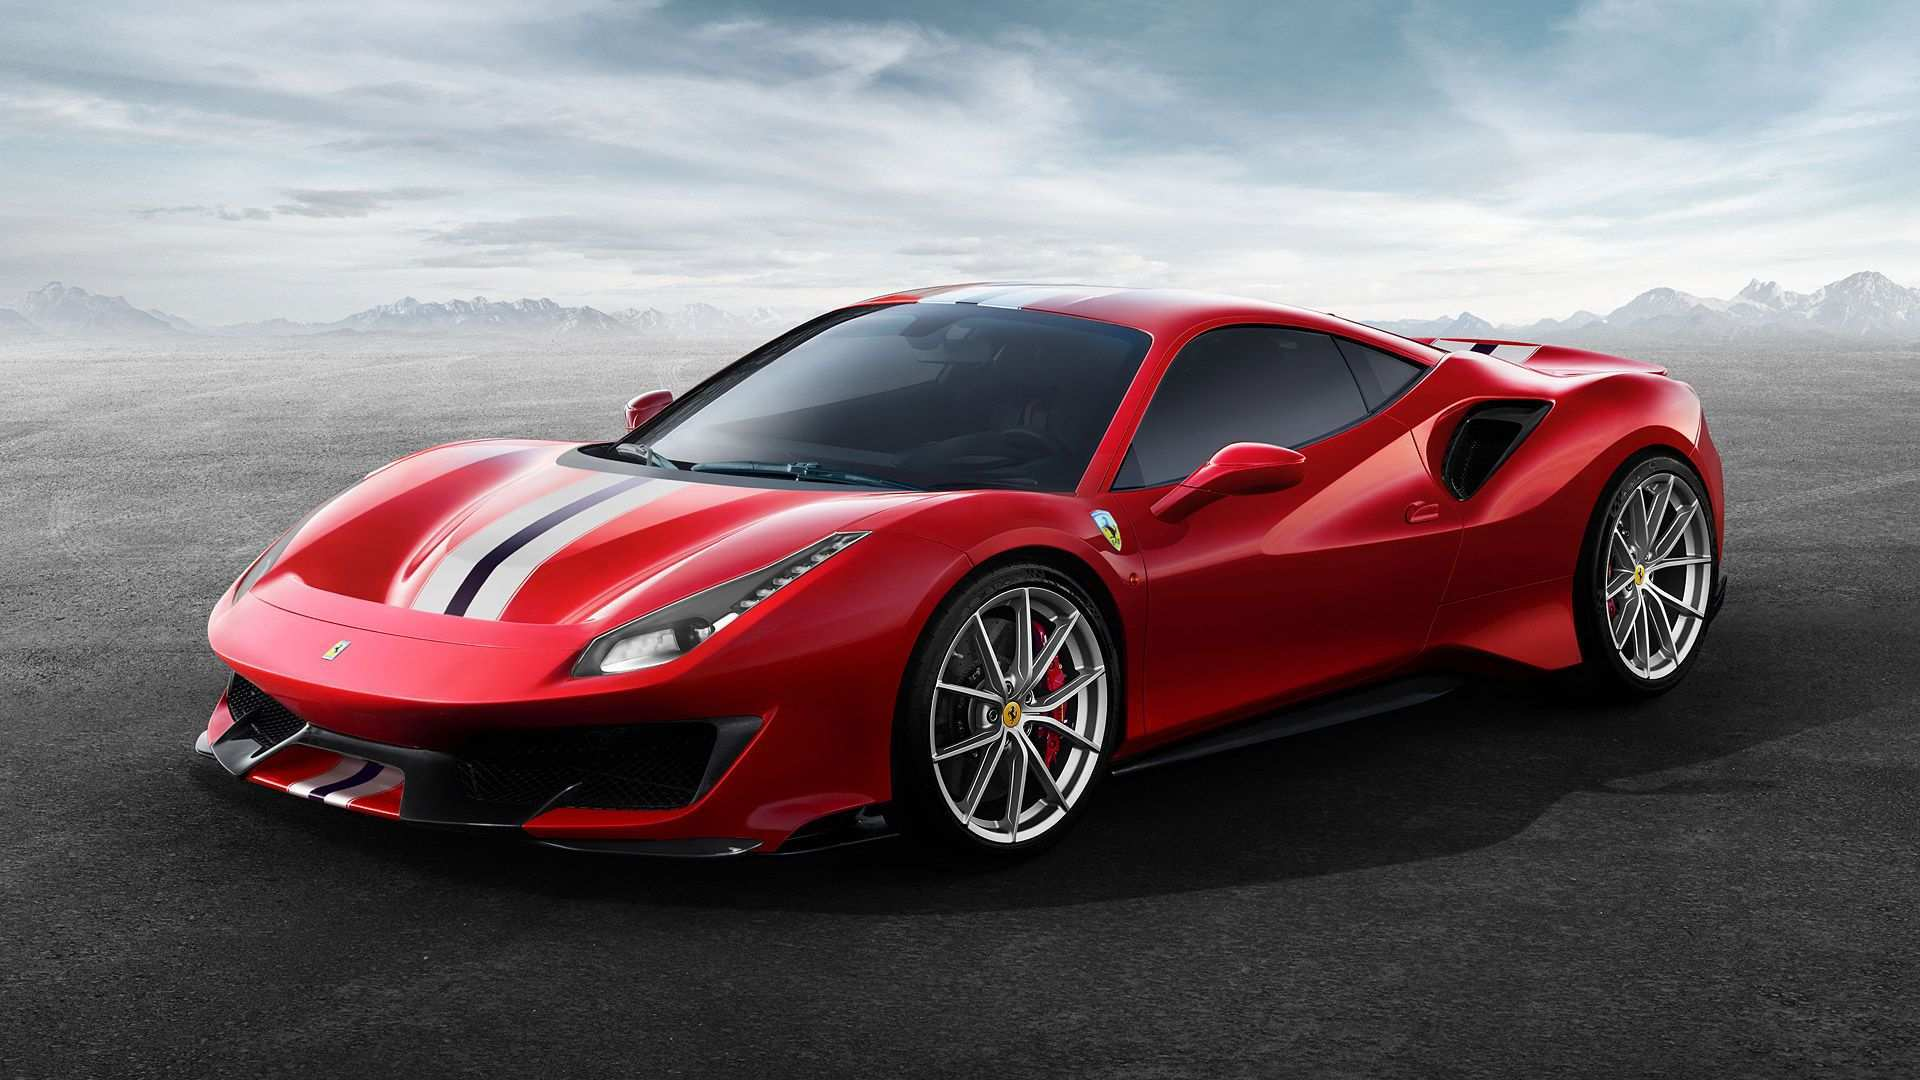 51 The Best 2019 Ferrari 488 GTB Redesign And Review